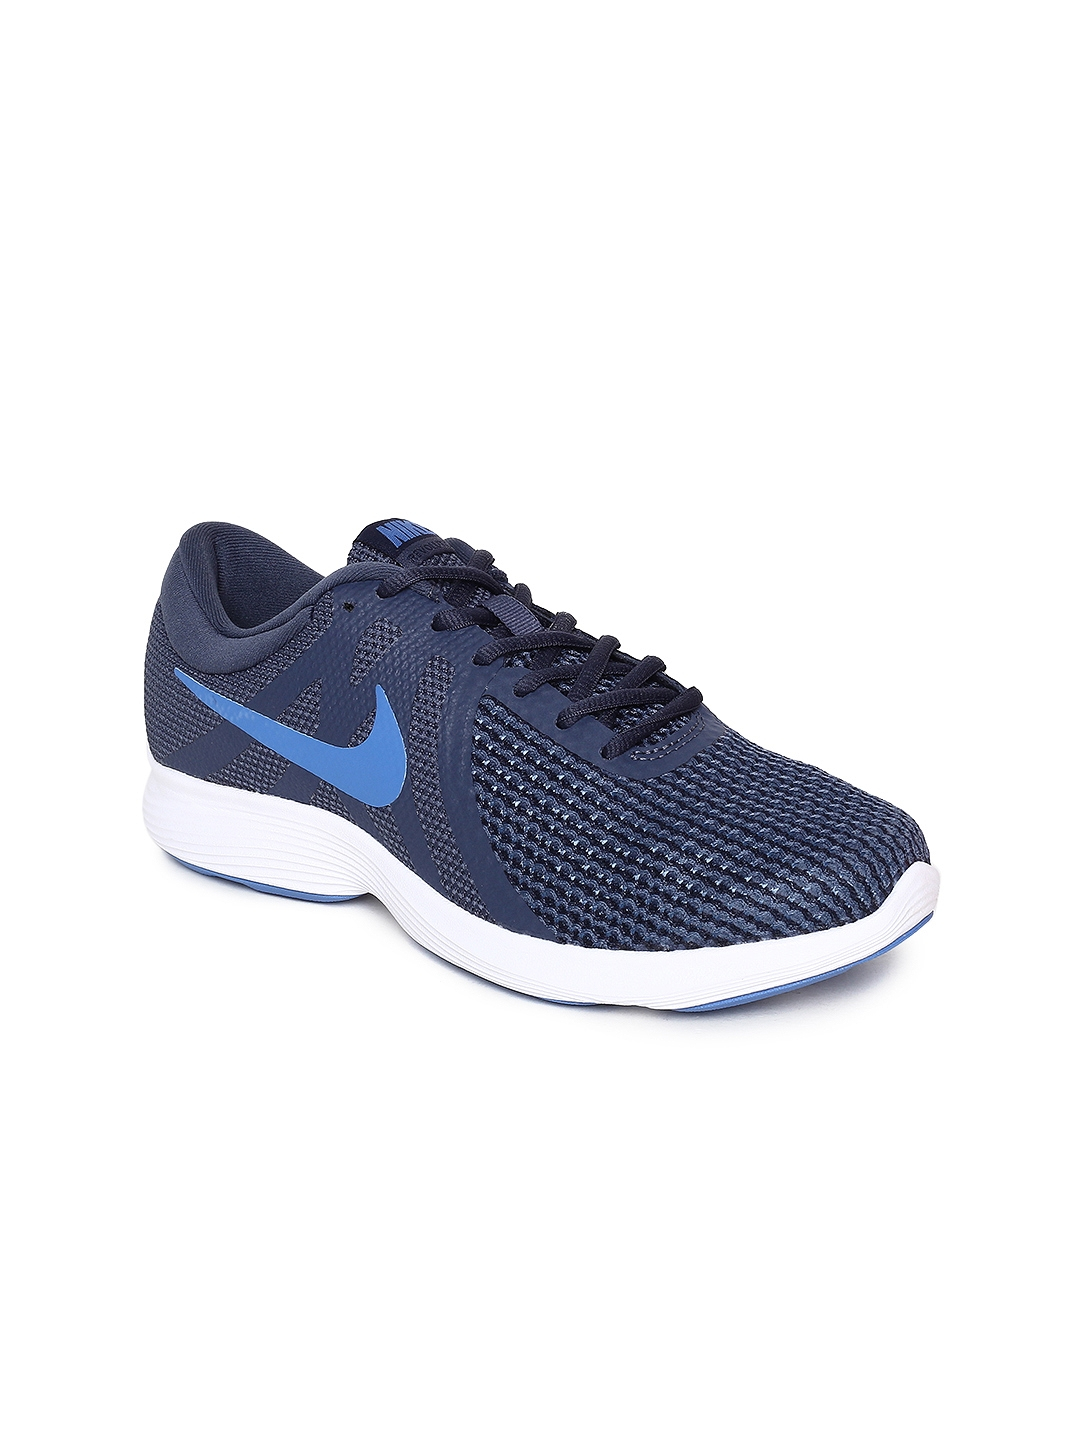 adda98c233a2 Buy Nike Women Blue REVOLUTION 4 Running Shoes - Sports Shoes for ...